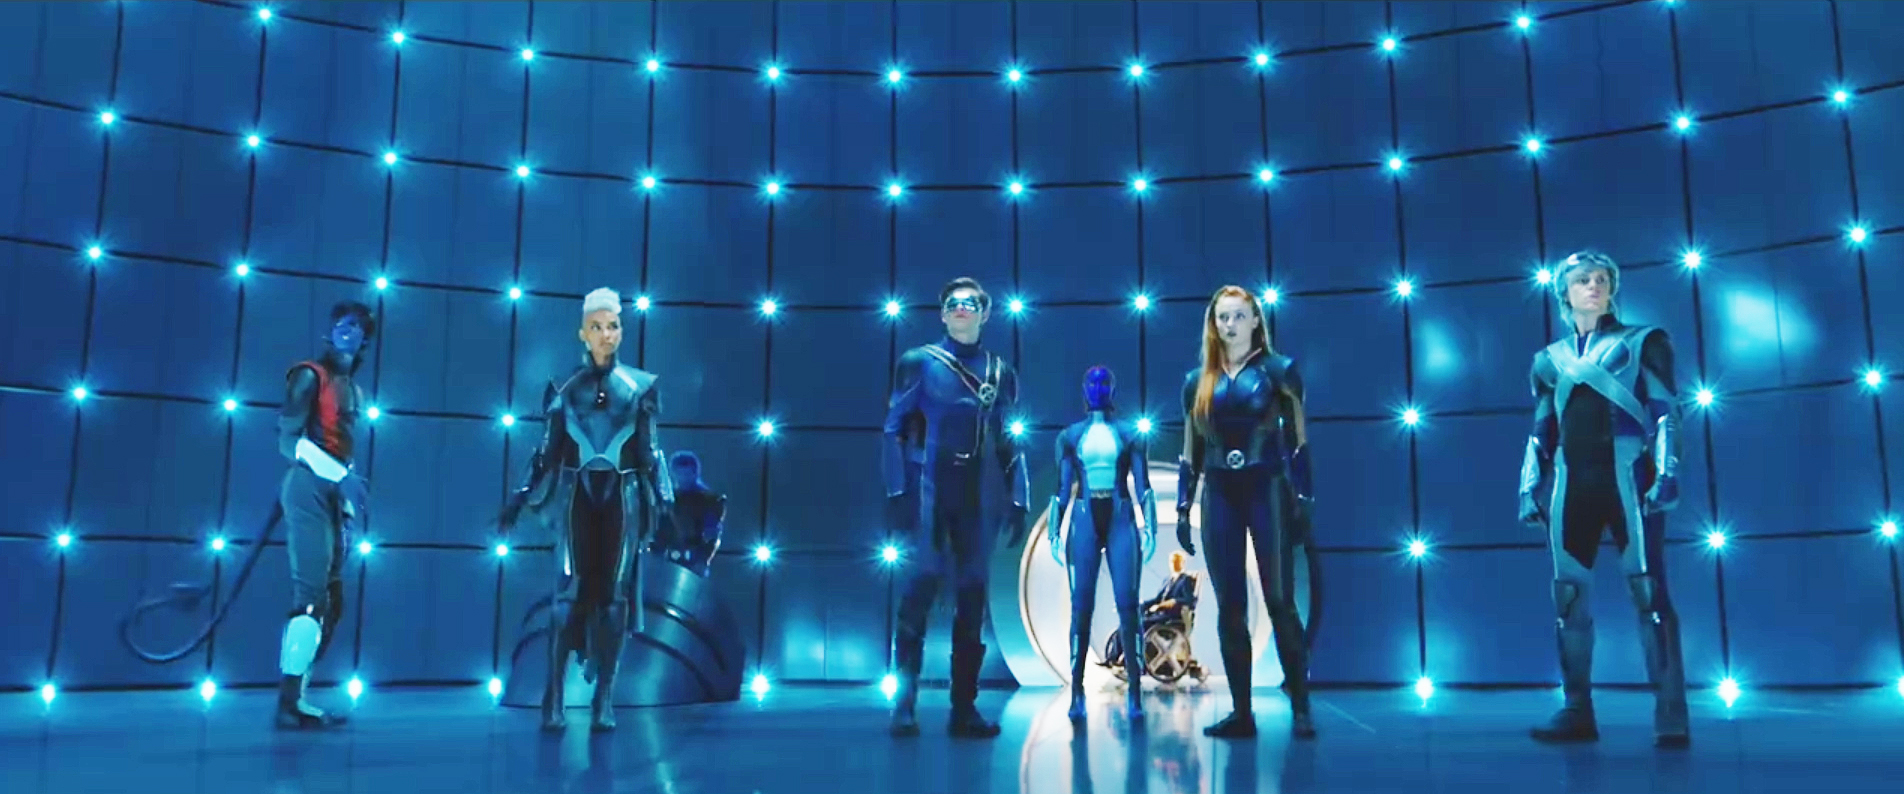 Check Out X-Men Apocalypse's Comic-Inspired Uniforms in All Their Goofy Glory